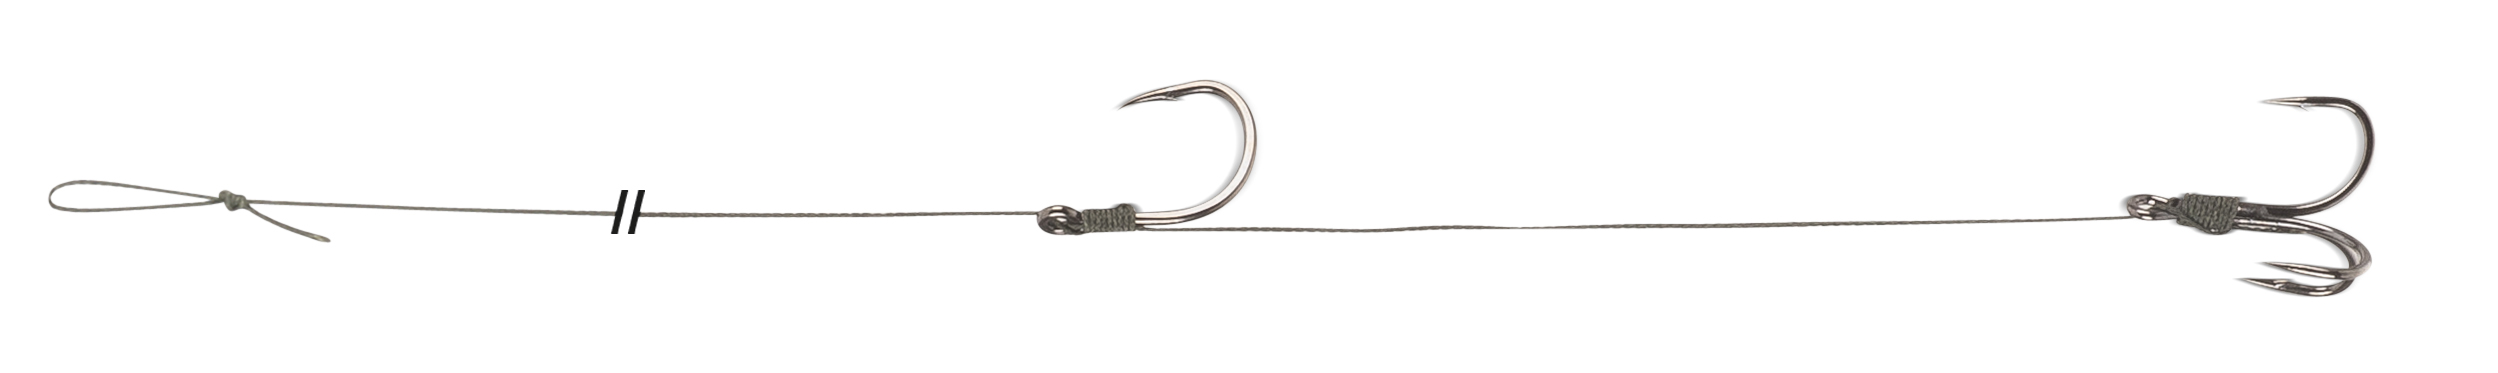 Návazec Uni Cat Single/Treble Hook Rig Nosnost 67 kg